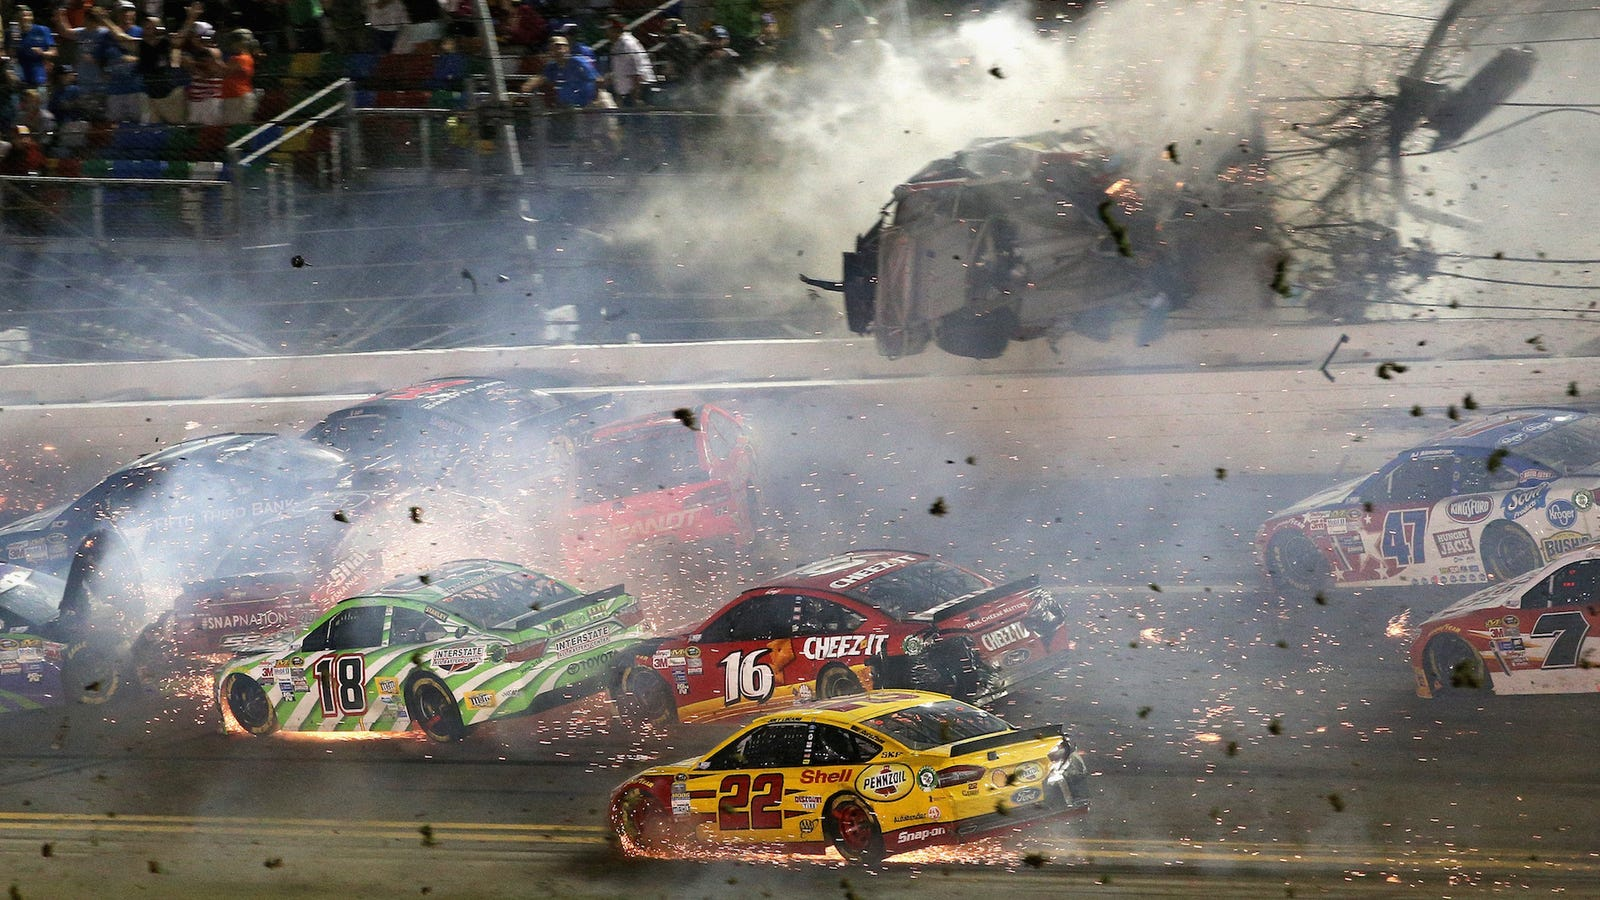 People Are Still Suing Over Injuries From That Nightmare NASCAR Wreck At Daytona In 2015